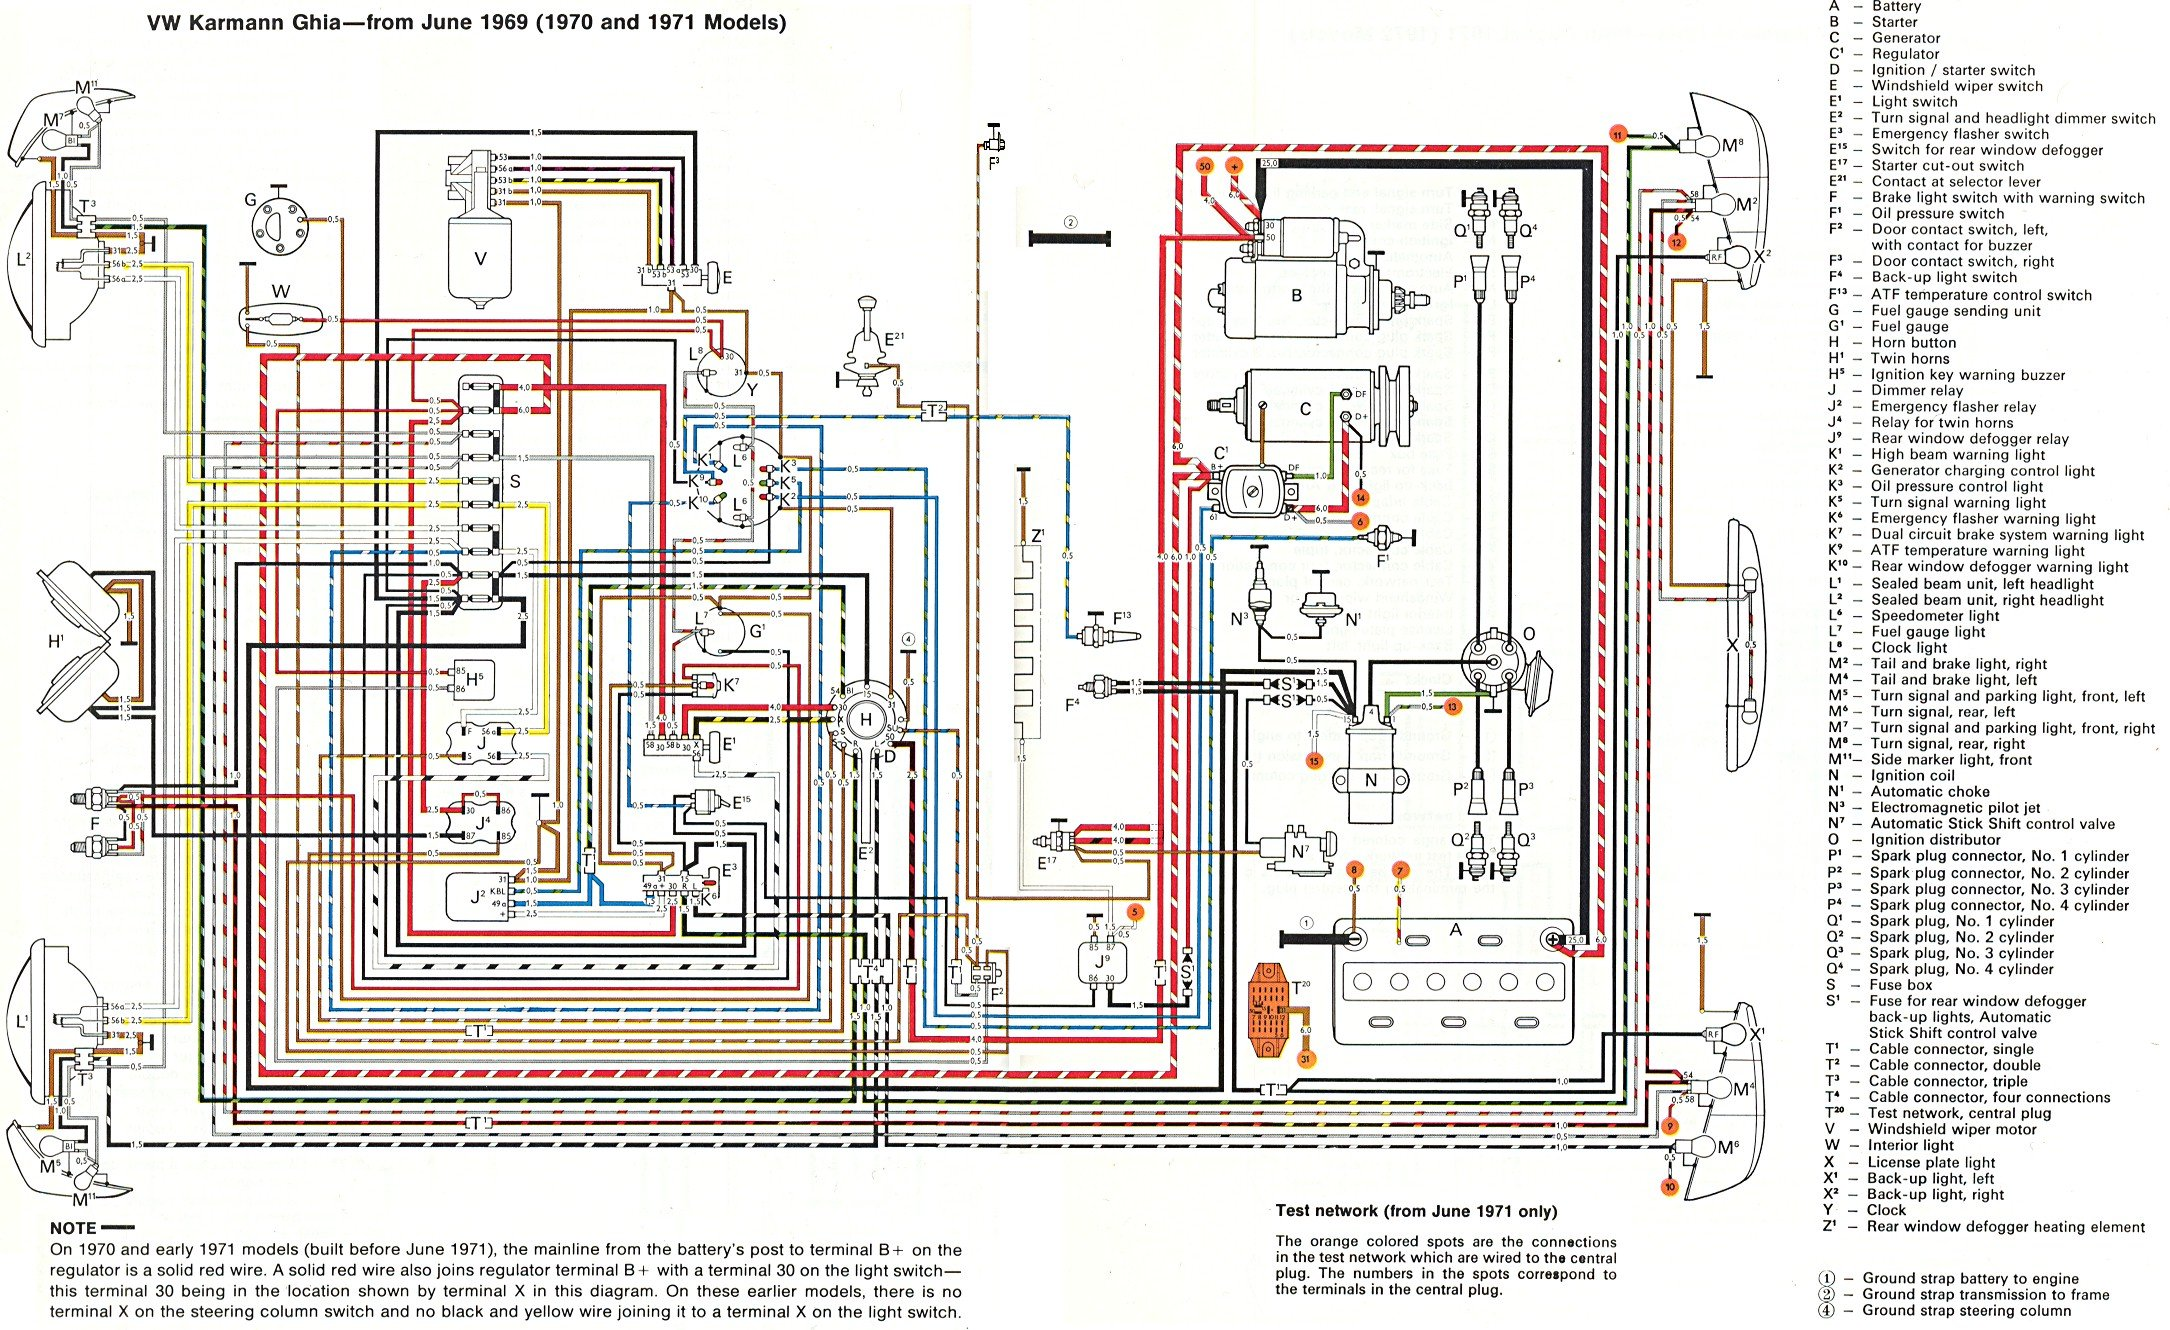 70 71ghia thesamba com karmann ghia wiring diagrams 1967 chevelle wiring diagram at creativeand.co